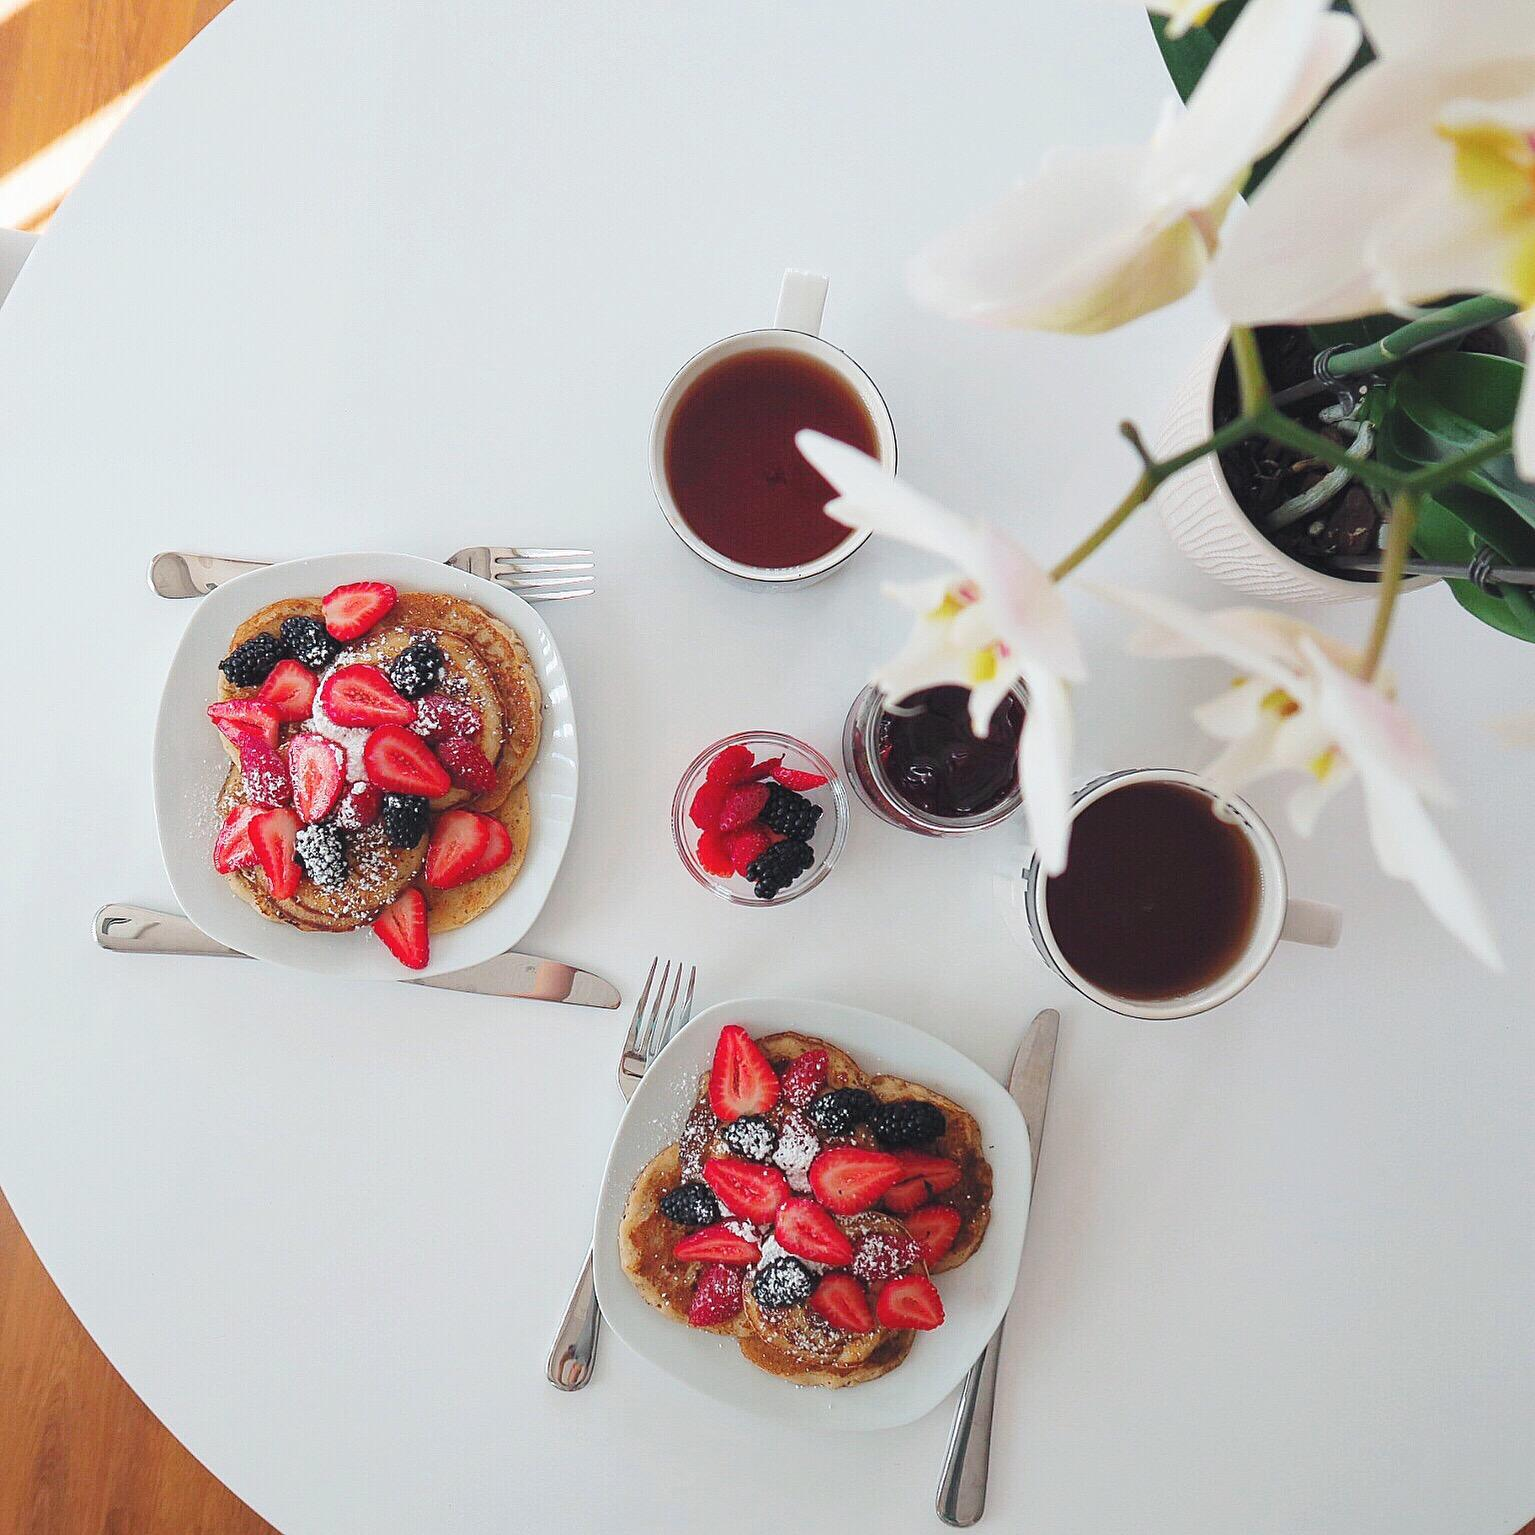 strawberry and blackberry breakfast pancakes